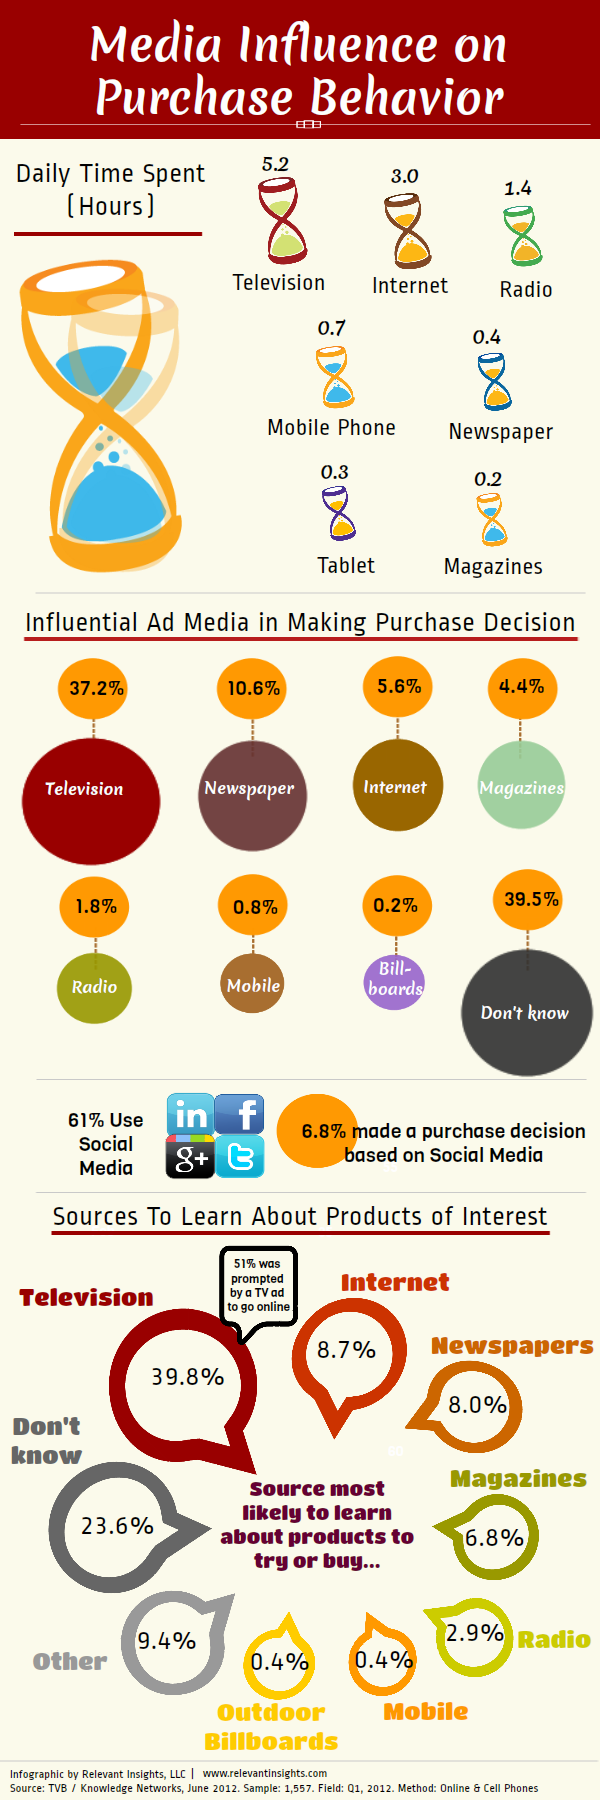 Media Influence on Purchase Behavior Infographic